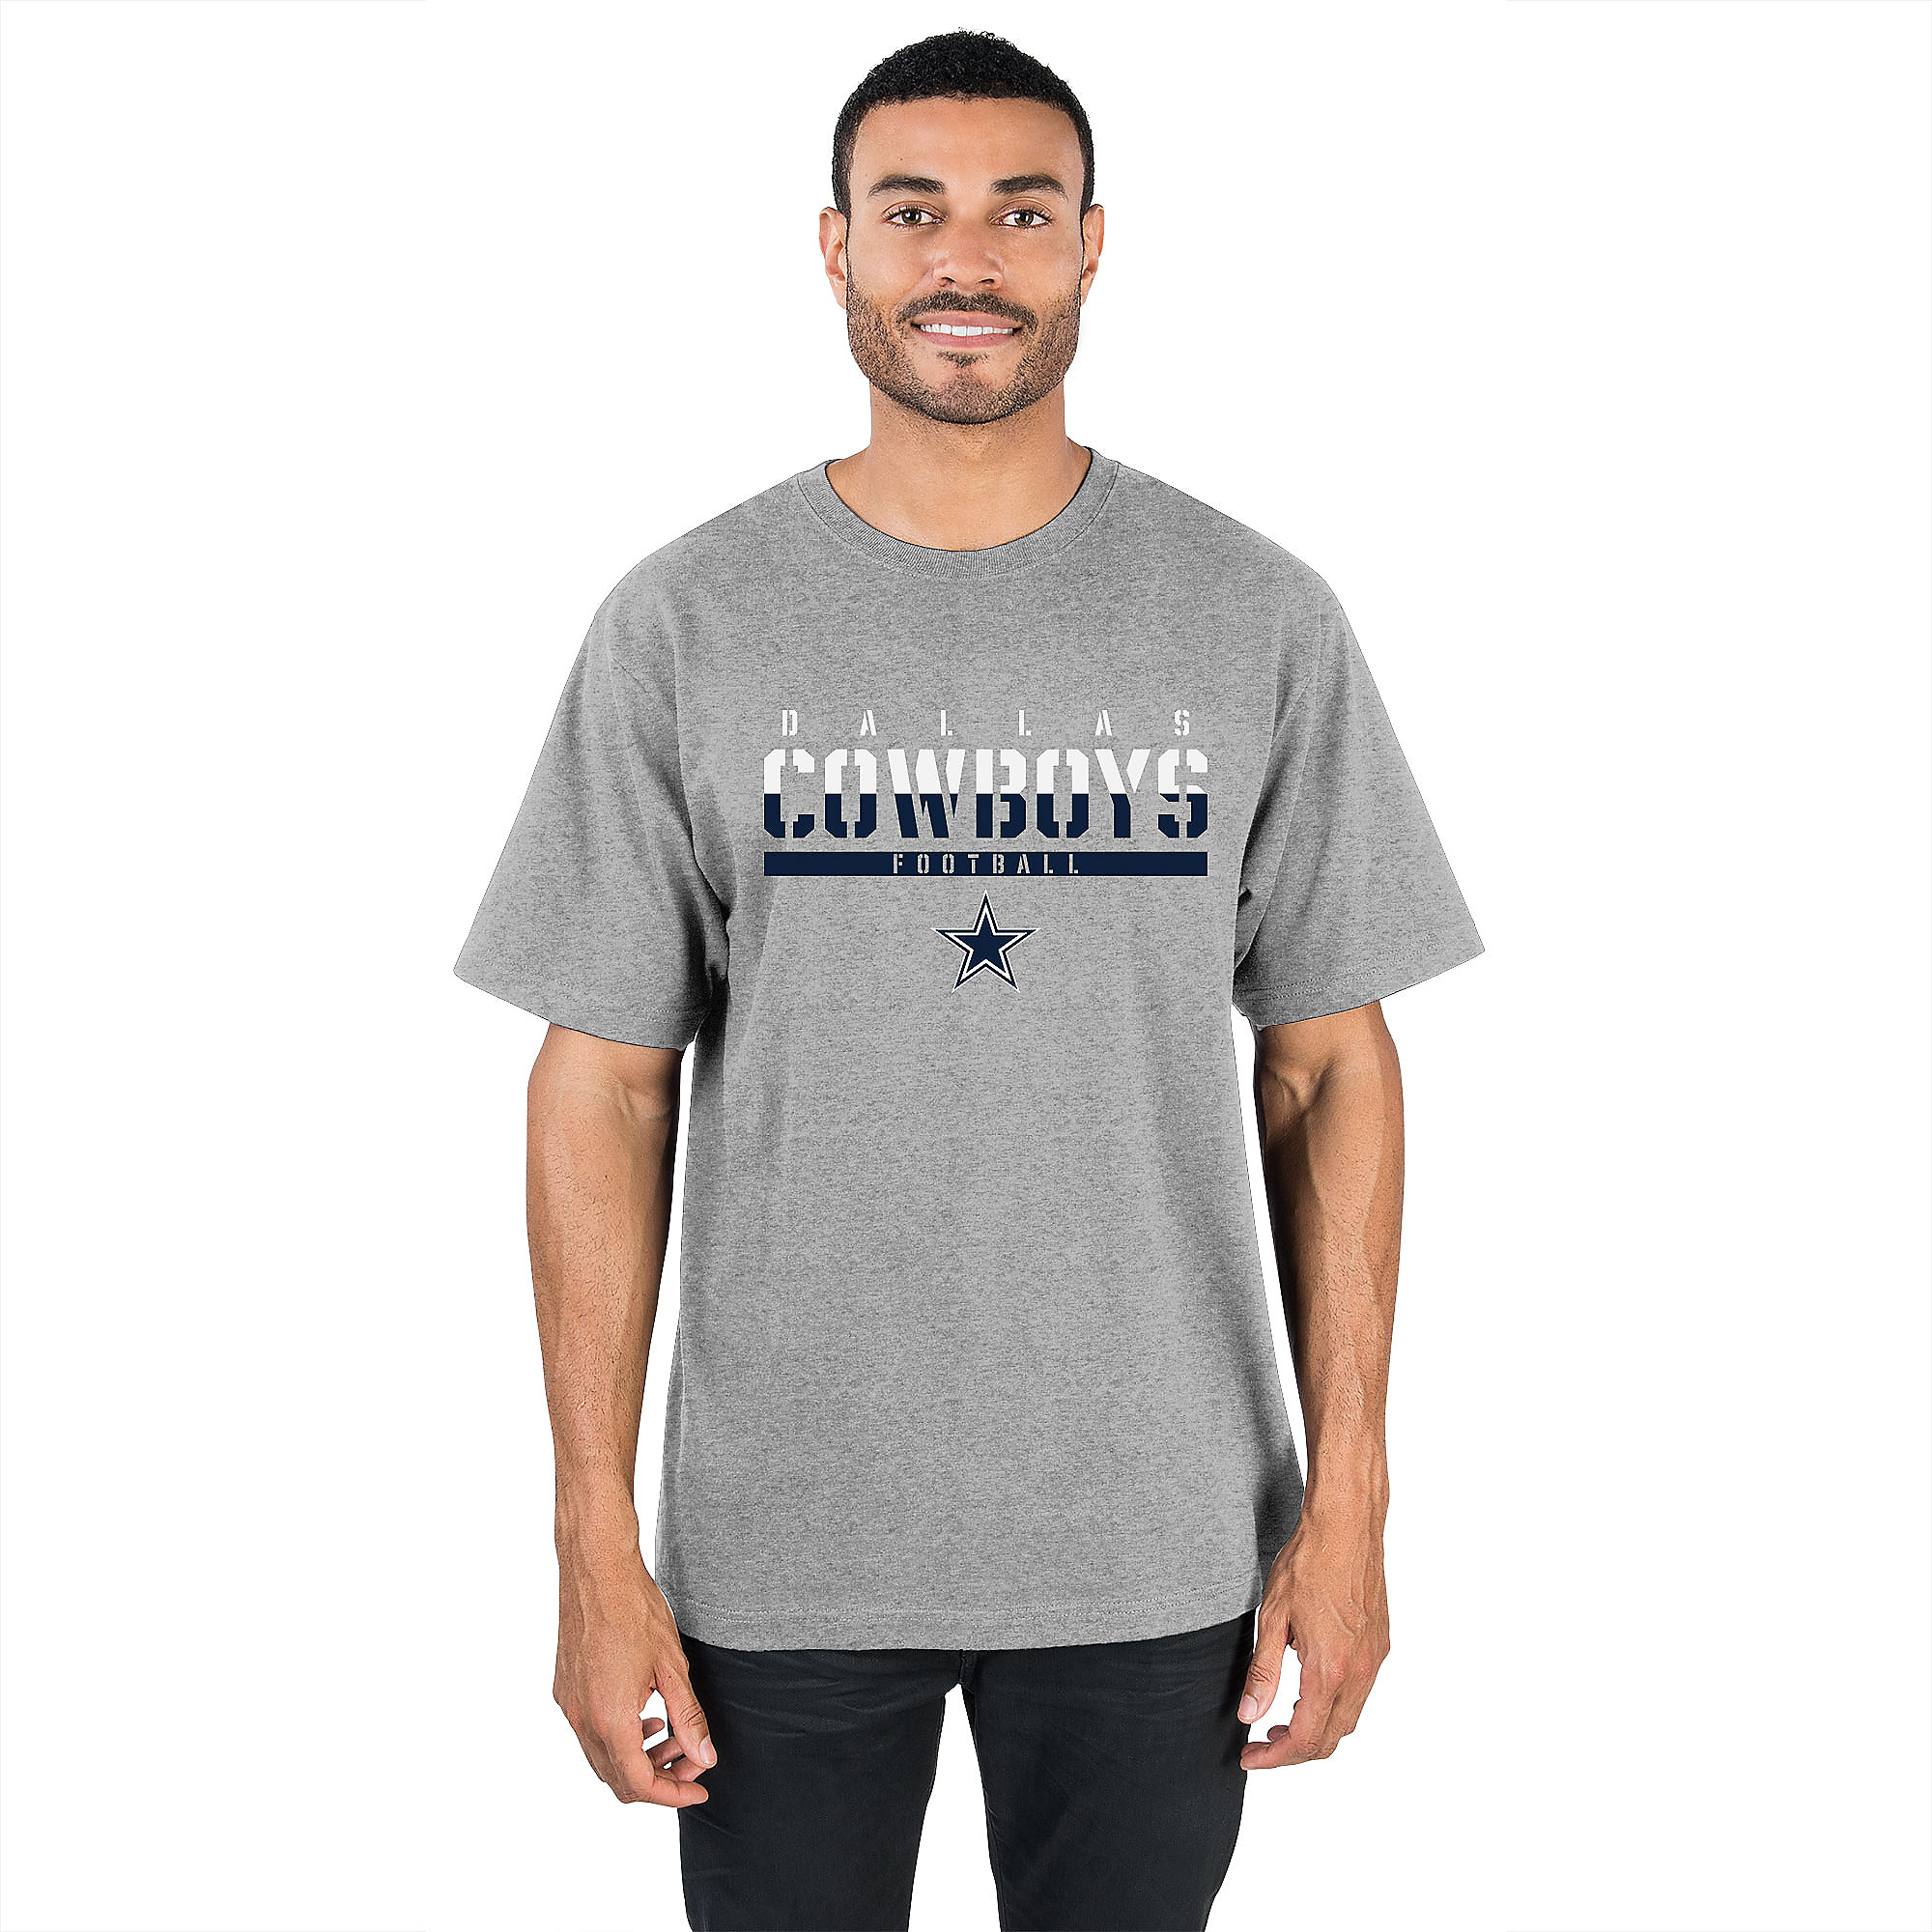 Dallas Cowboys Ruthless Tee